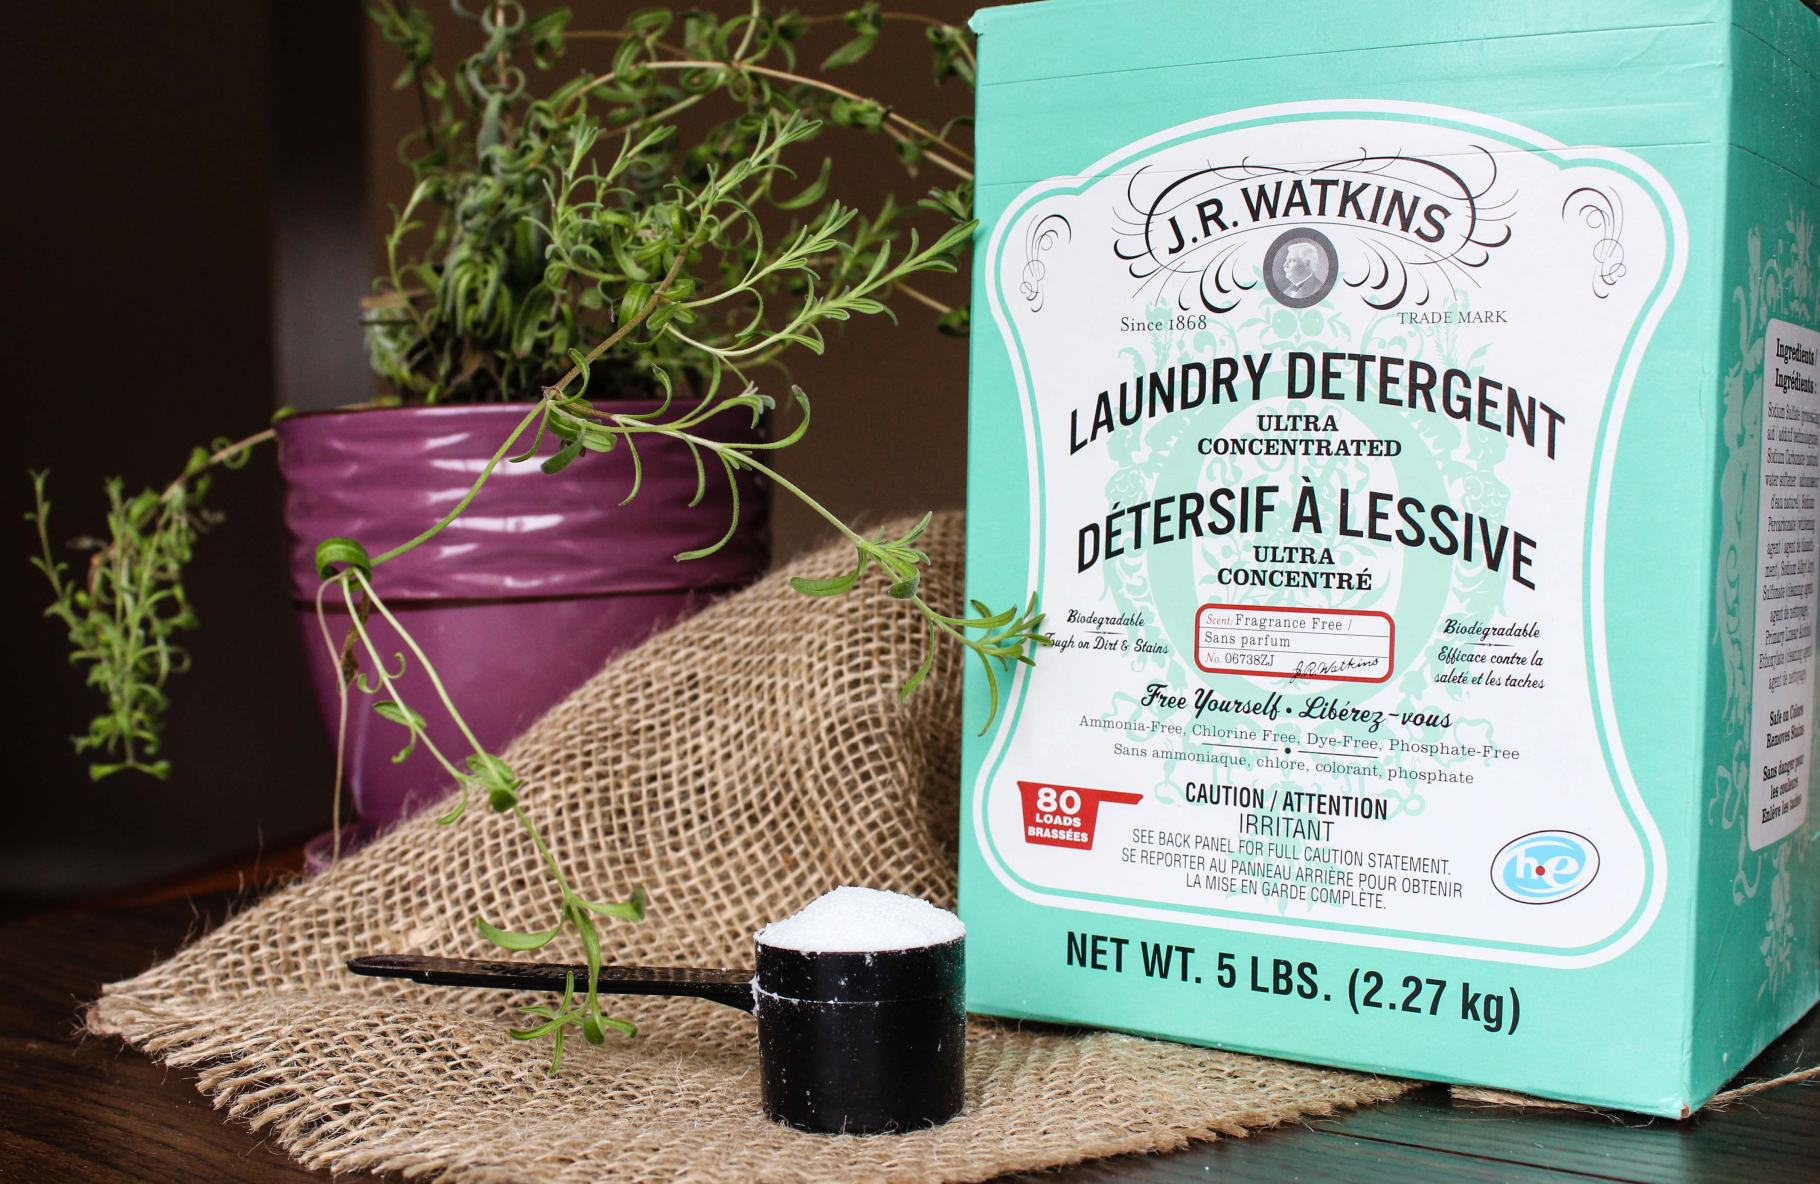 J.R Watkins Powder Laundry Detergent Review | Green Up Your Laundry